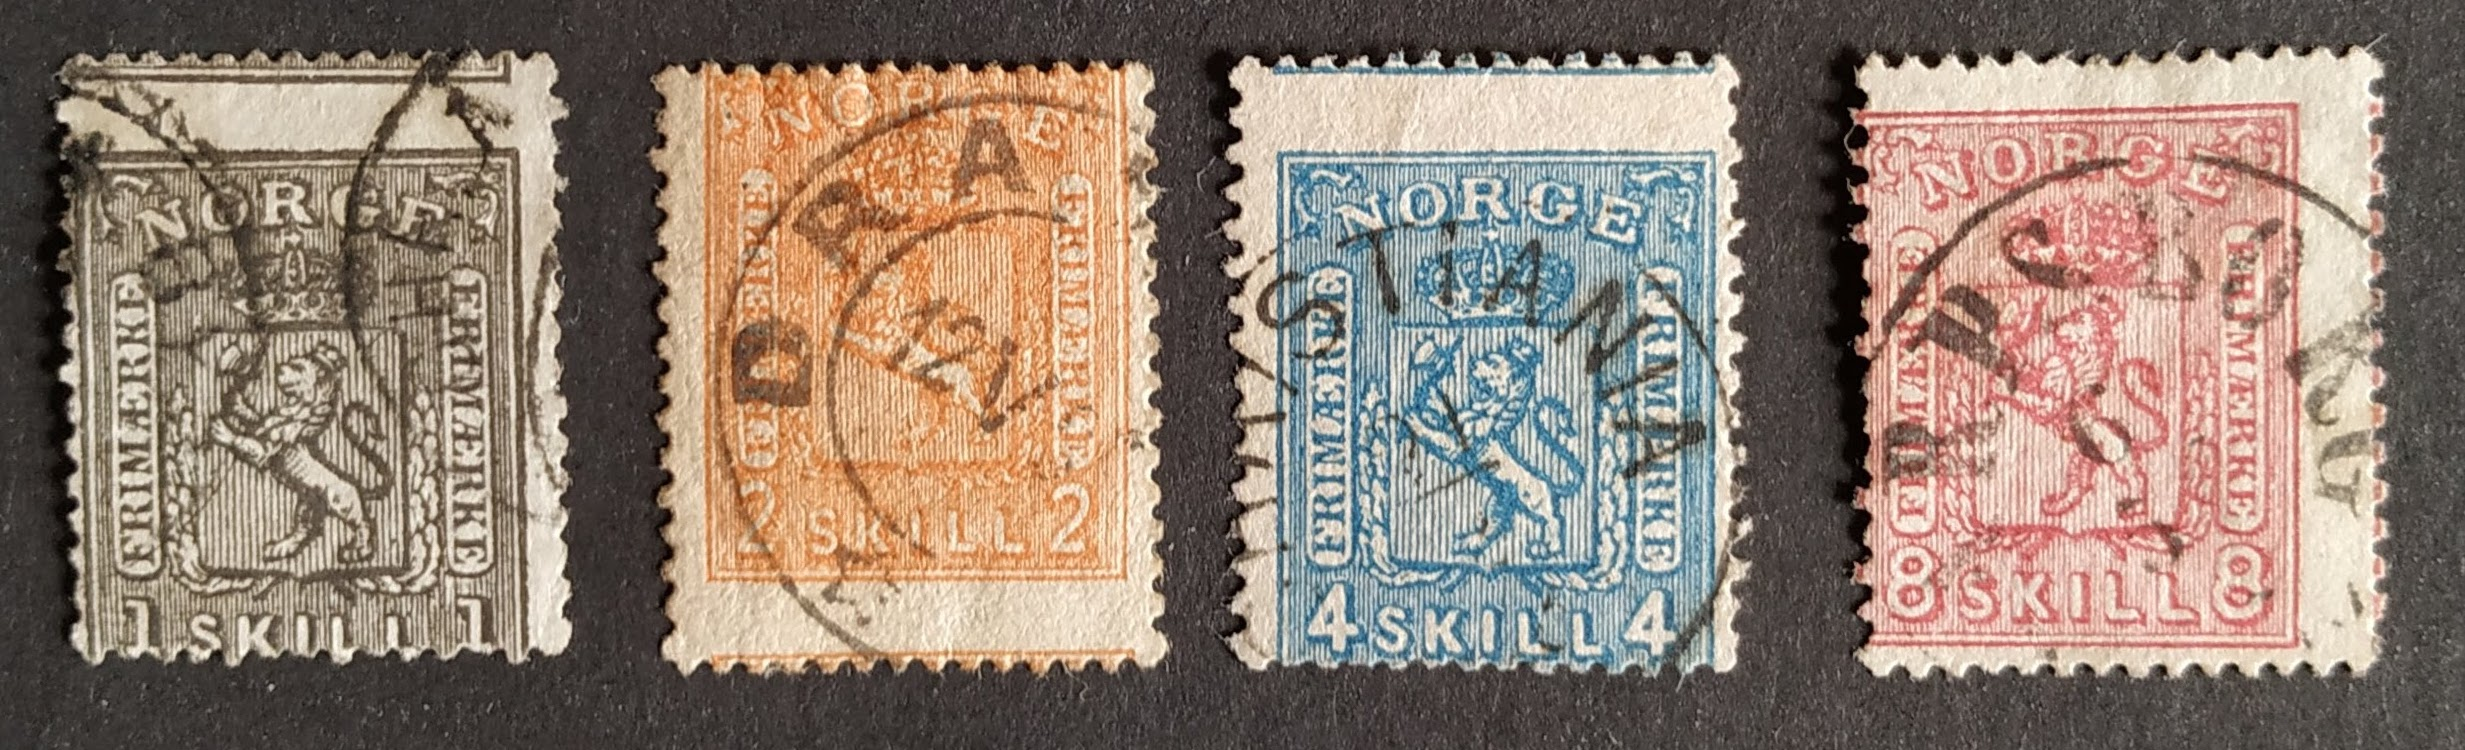 Perforation of stamps in the 1860s